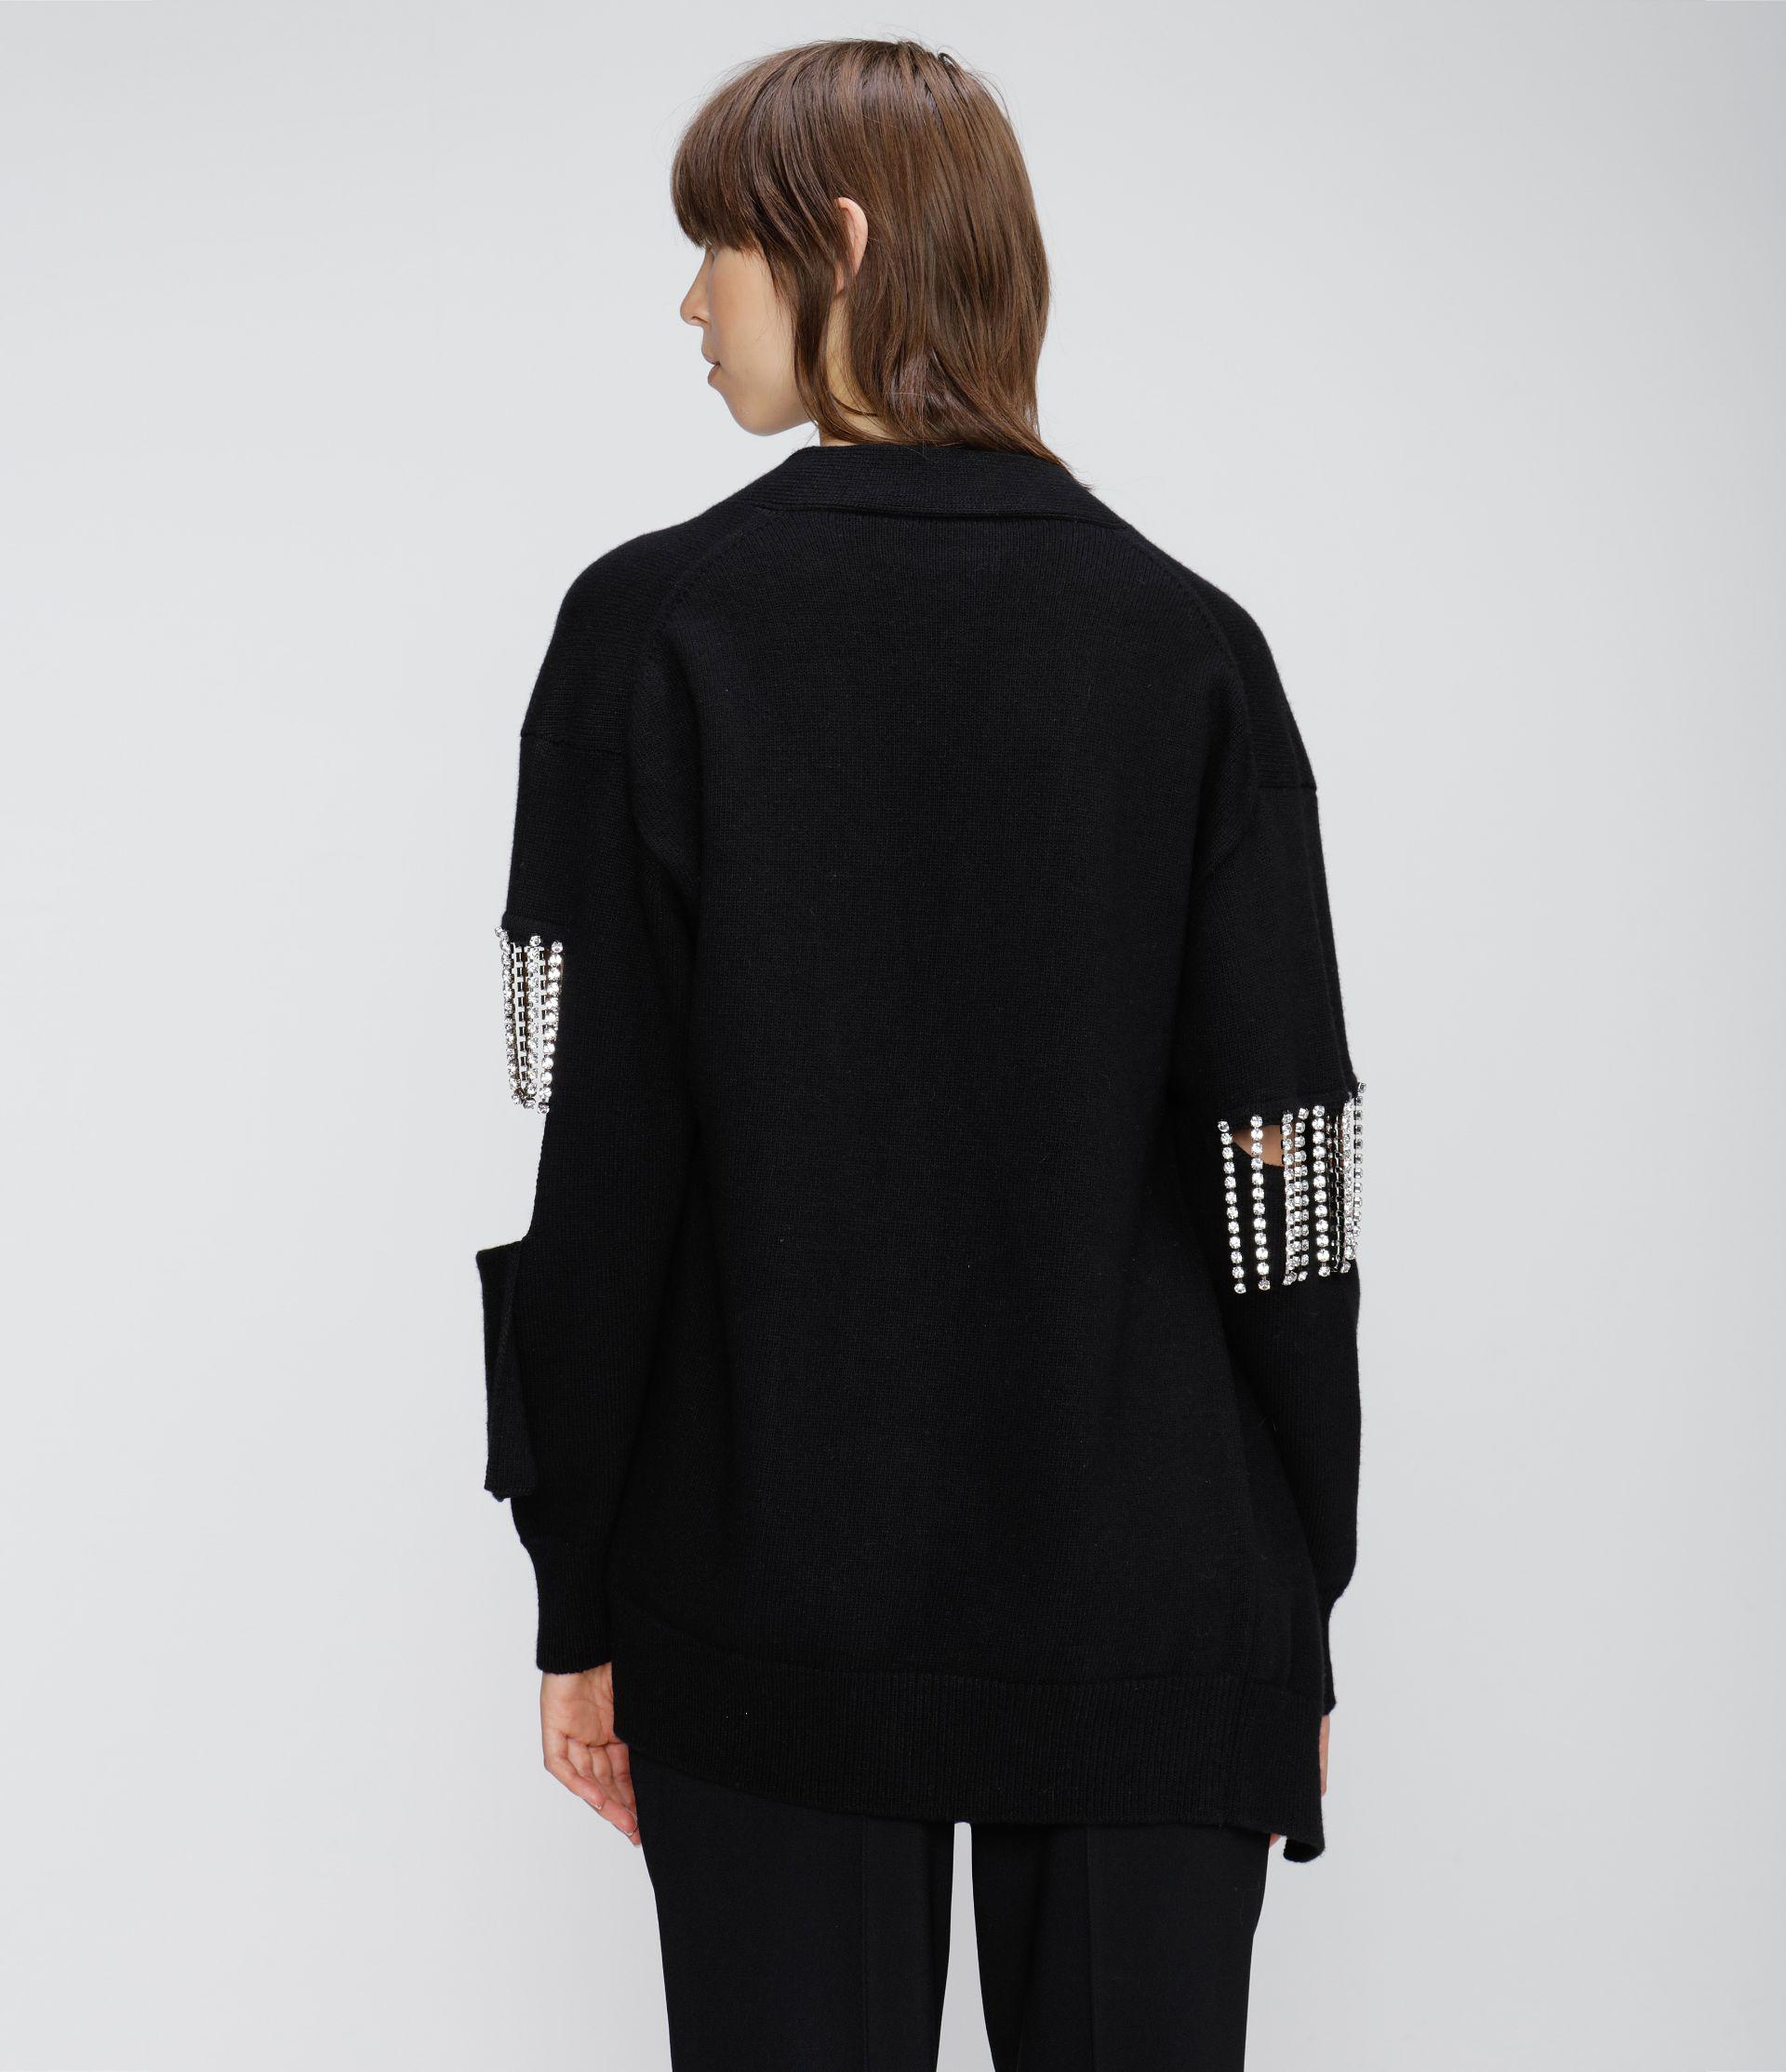 cut-out cupchain knitted cardigan 2